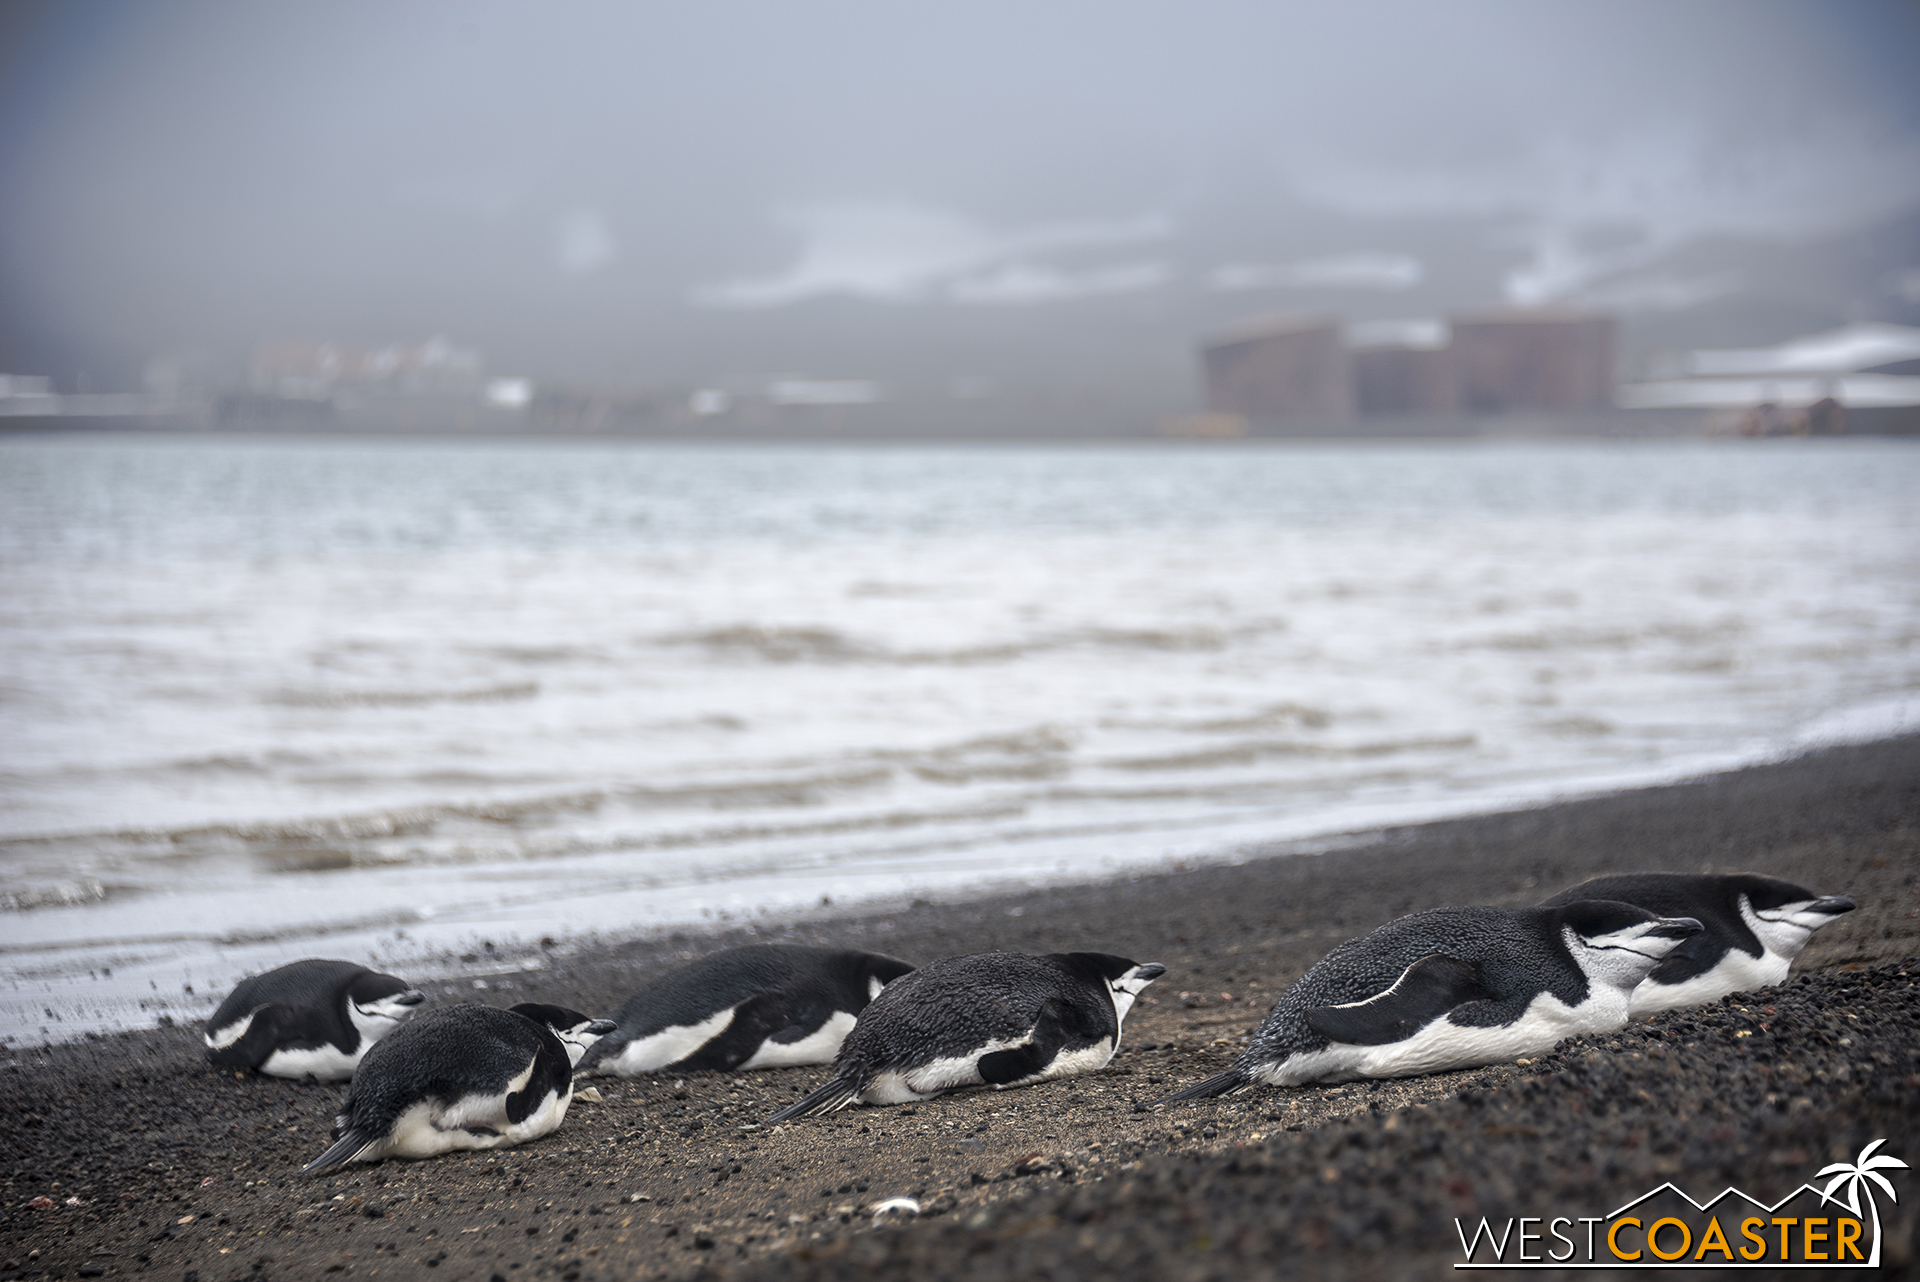 Back on the beach, numerous chinstrap penguins rest.